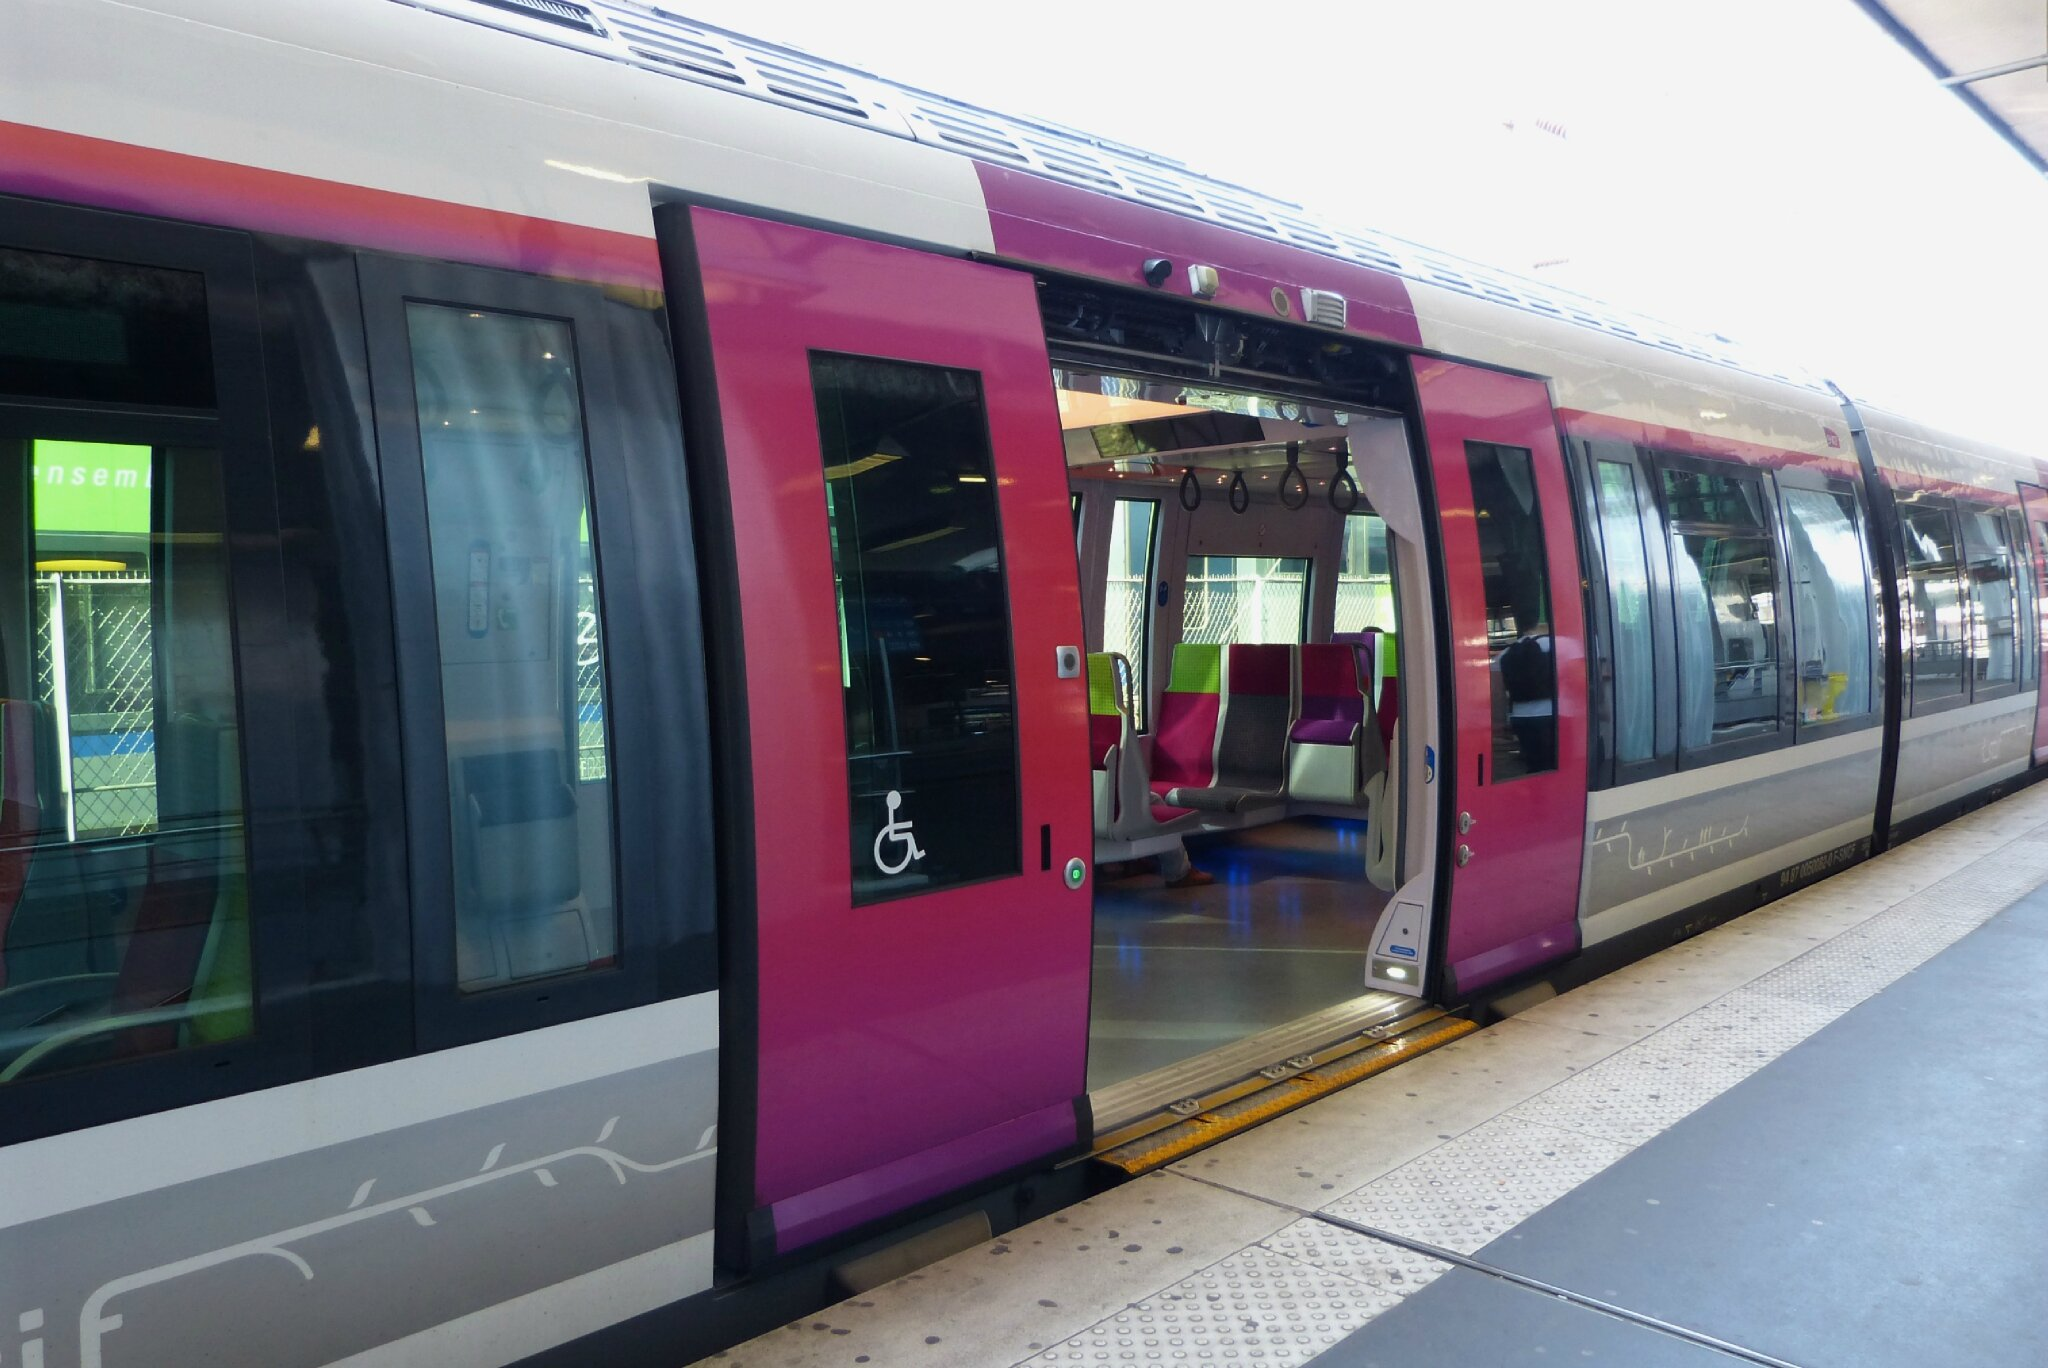 Fauteuils Train Gares Transportparis Le Webmagazine Des Transports